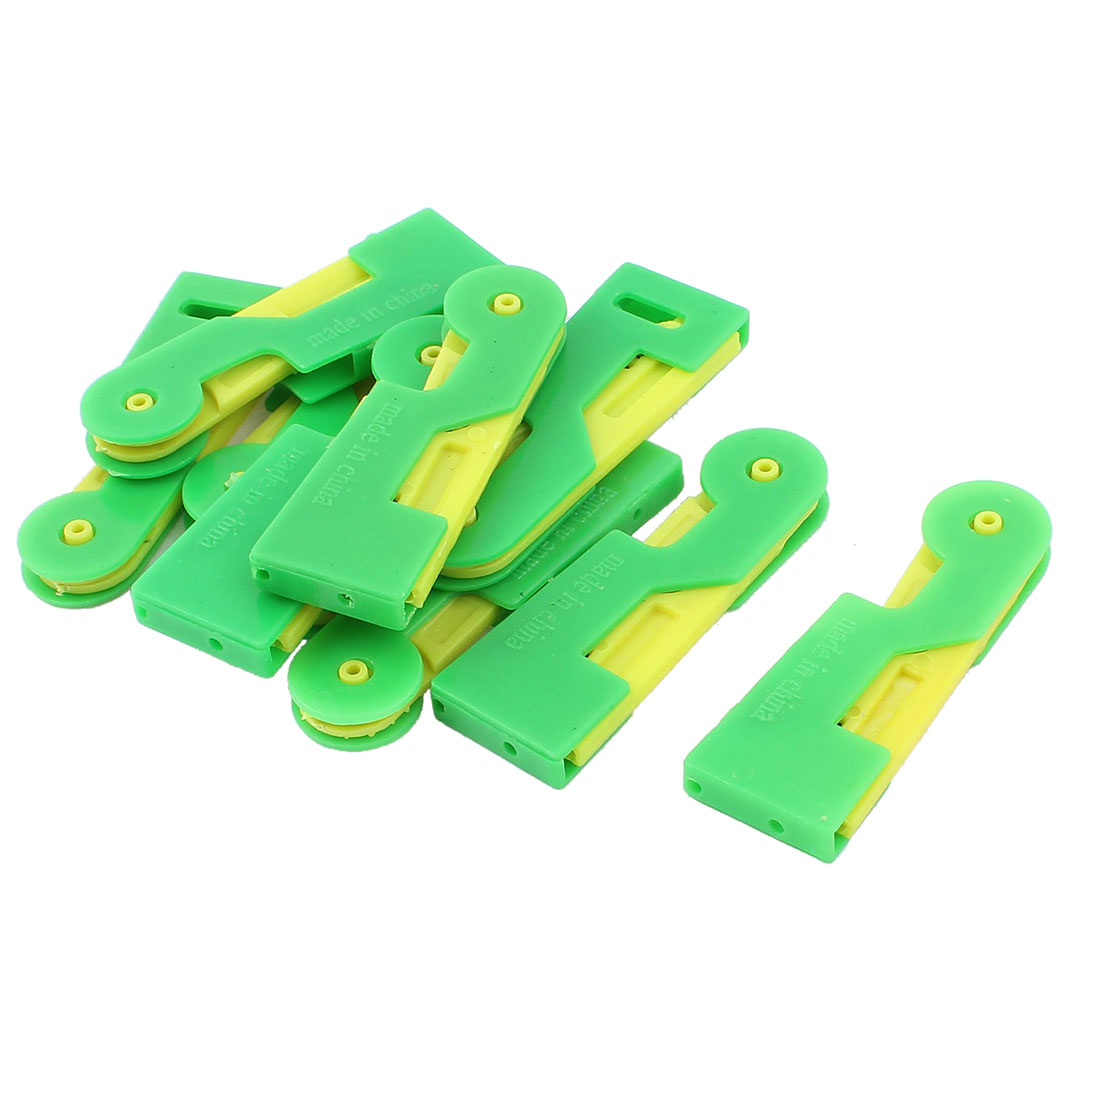 Unique Bargains 10pcs Green Yellow Elder Stitch Sew Hem Automatic Needle Threader Thread Guide